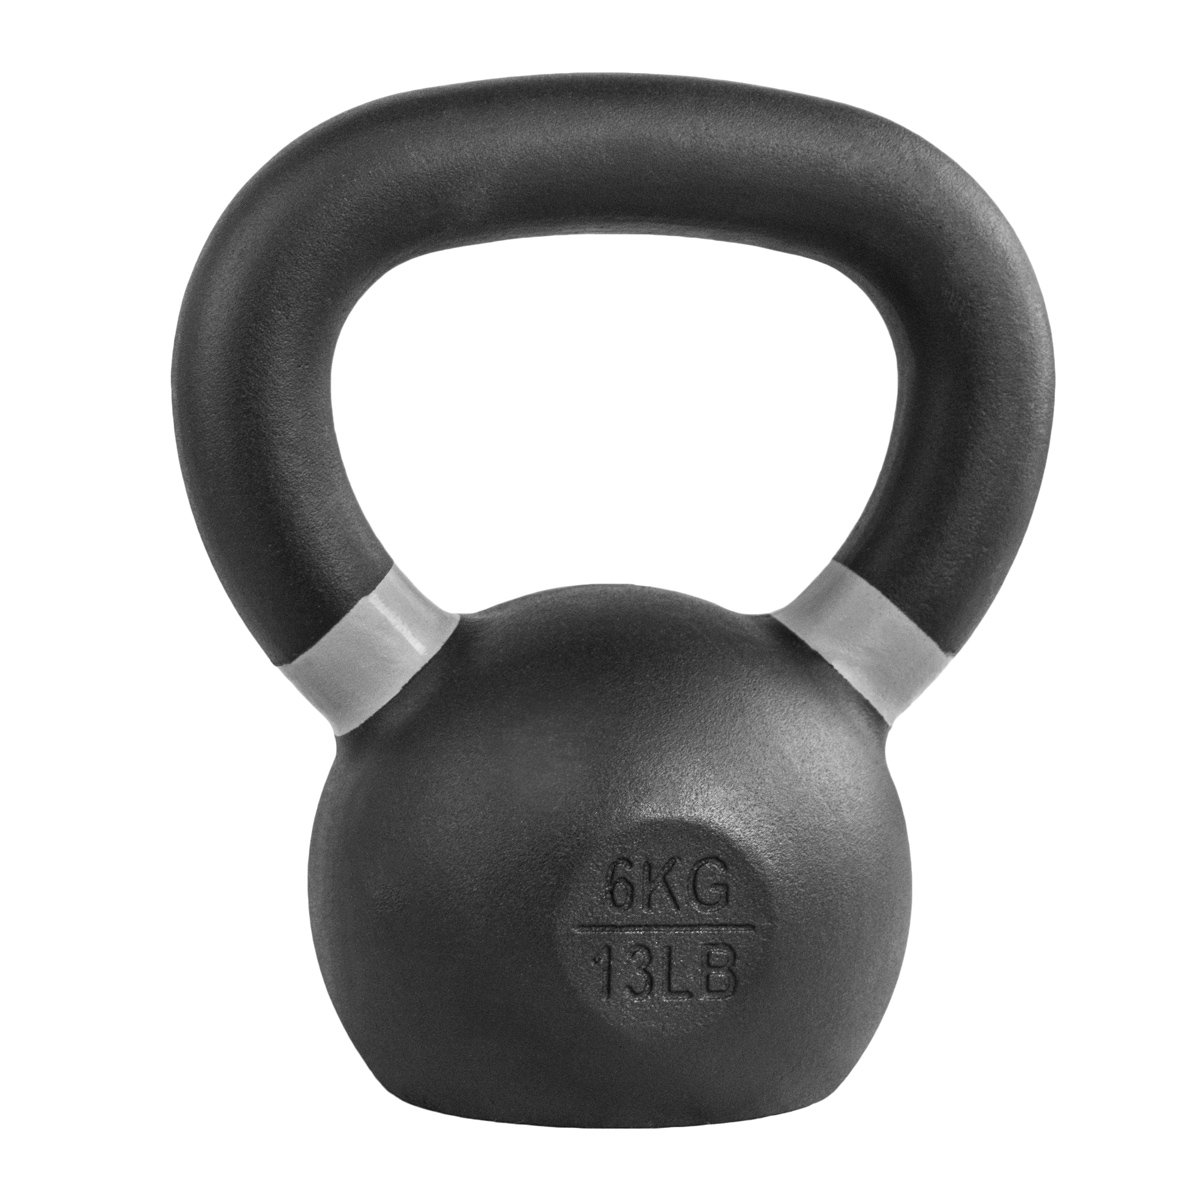 Rep 6 kg Kettlebell for Strength and Conditioning